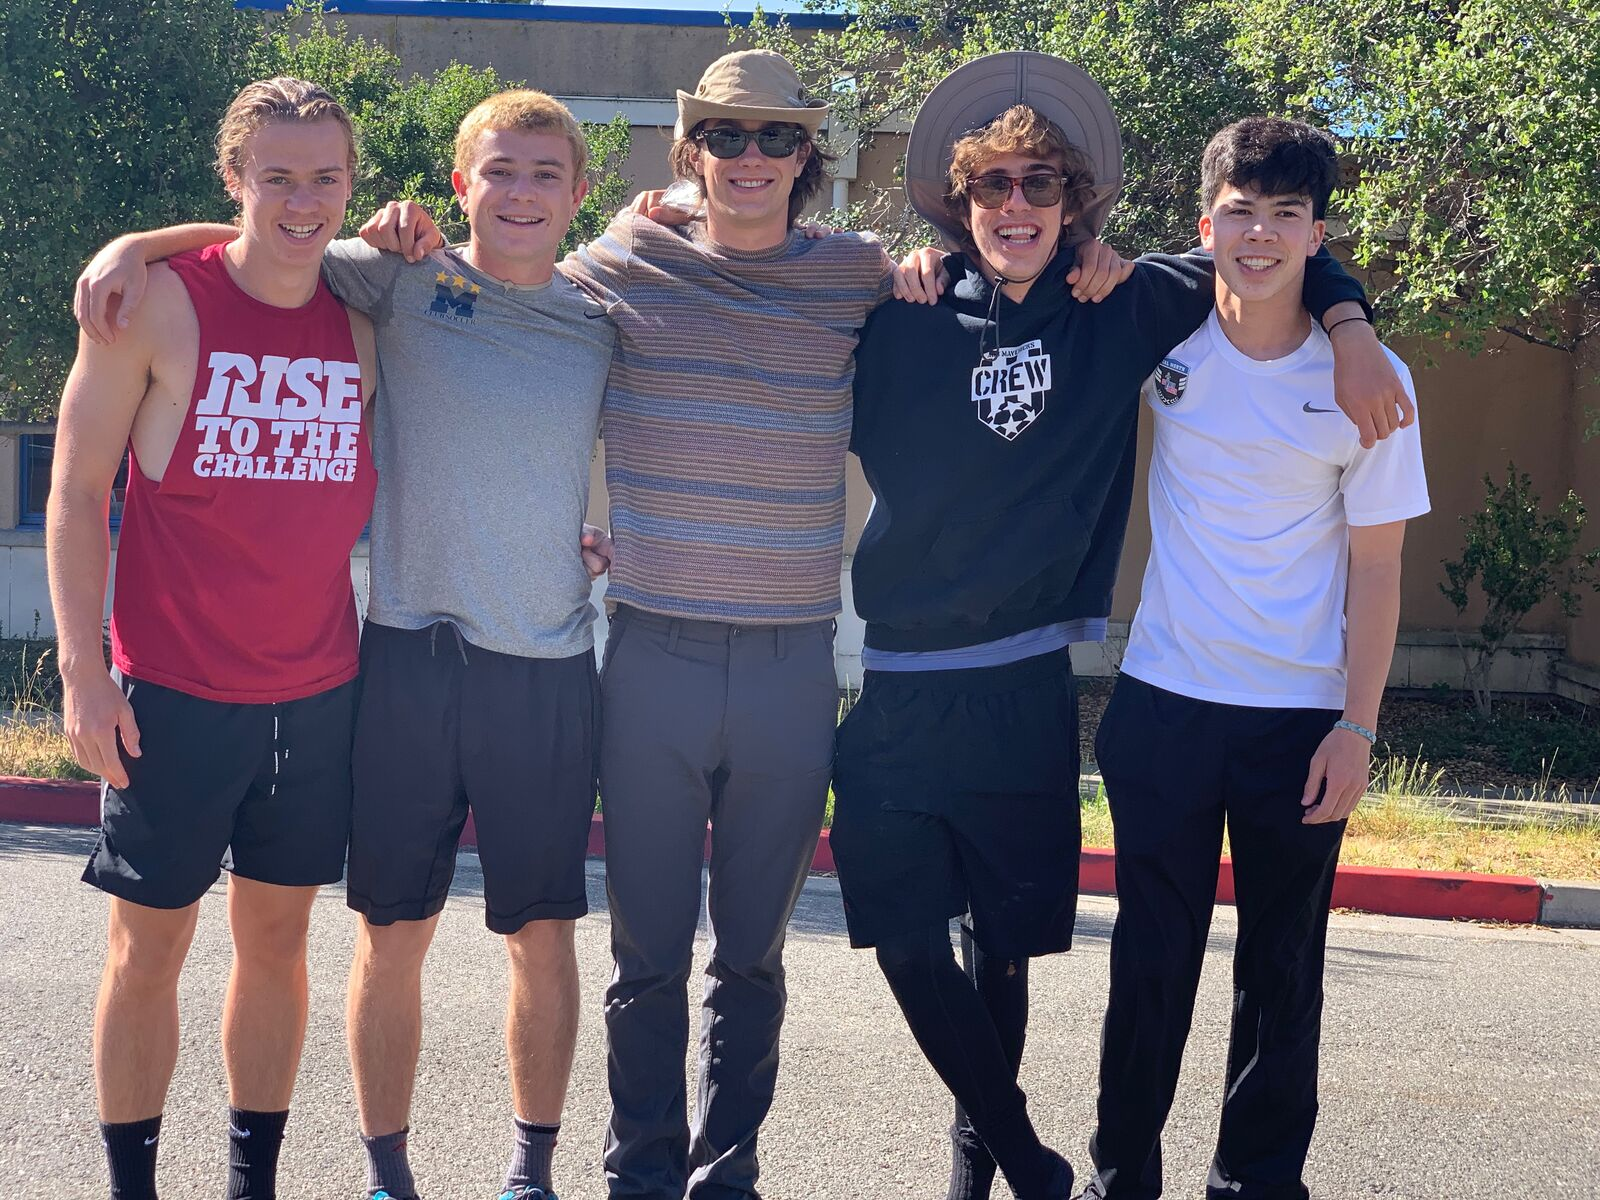 A tight-knit group of Berkeley friends has suffered two devastating losses this year. From left: Kinlay Watkins, Eli Kane, Jack Ferris, Seth Pierson, and Ross Schultz, who died in May.